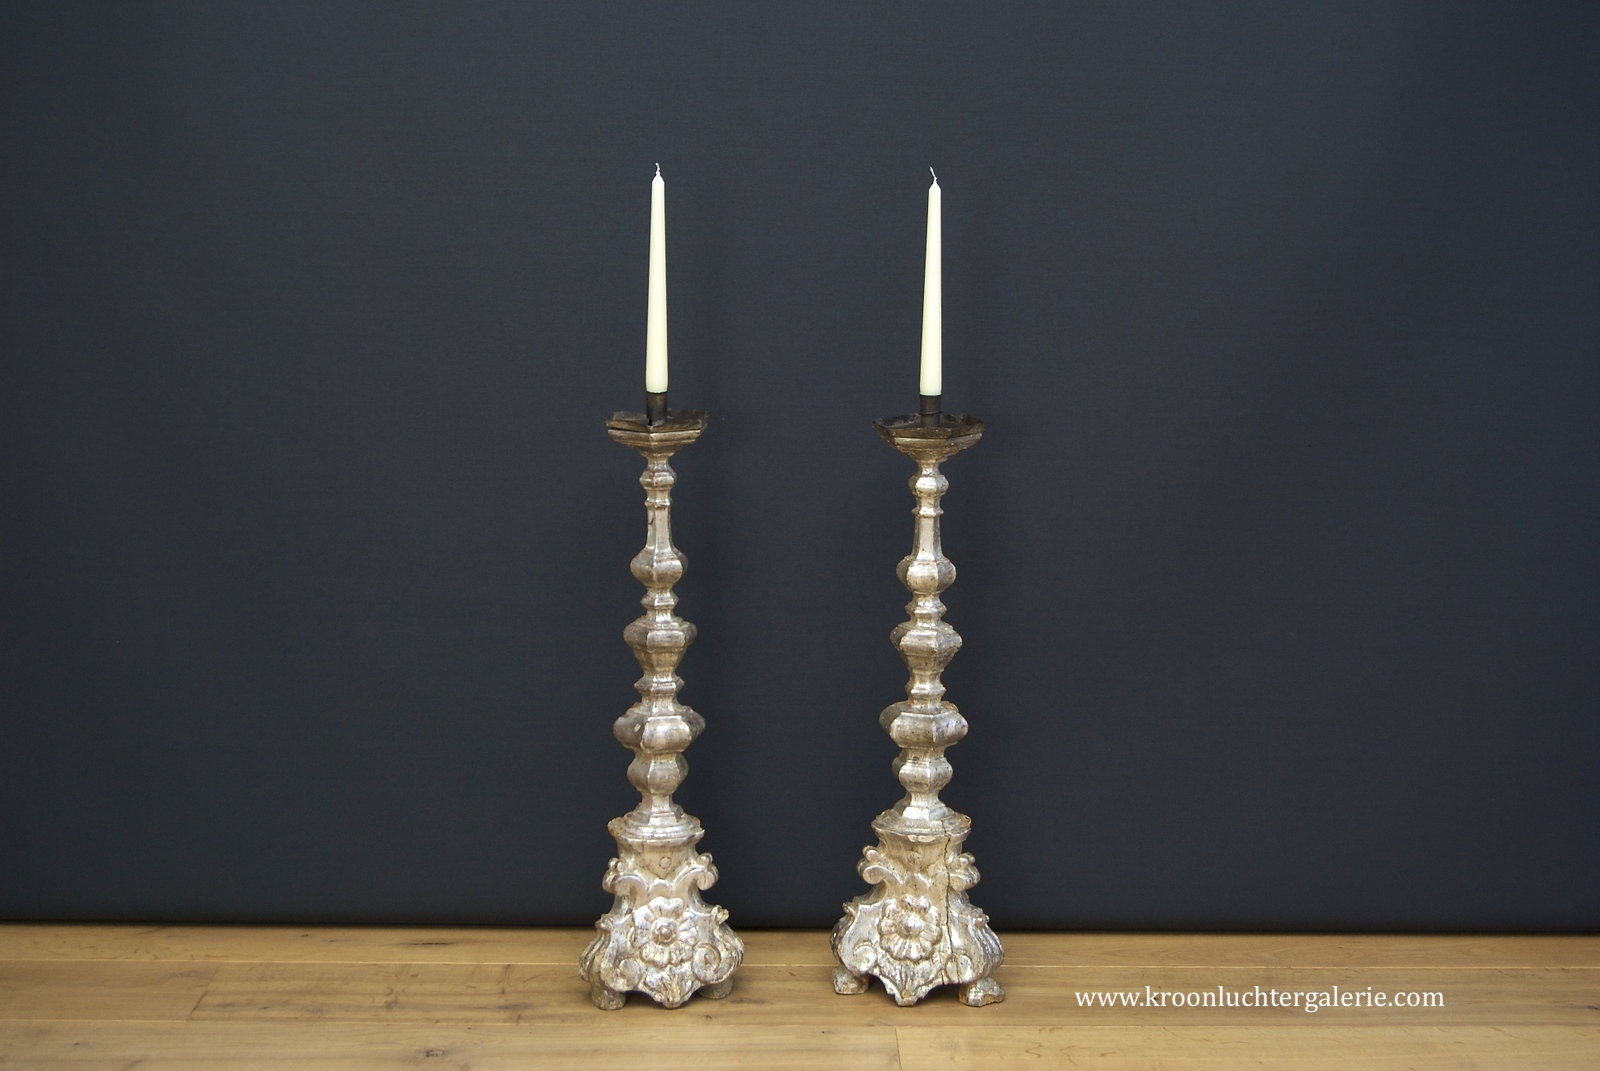 A pair of 18th century Italian silver leaf pricket sticks/ candlesticks